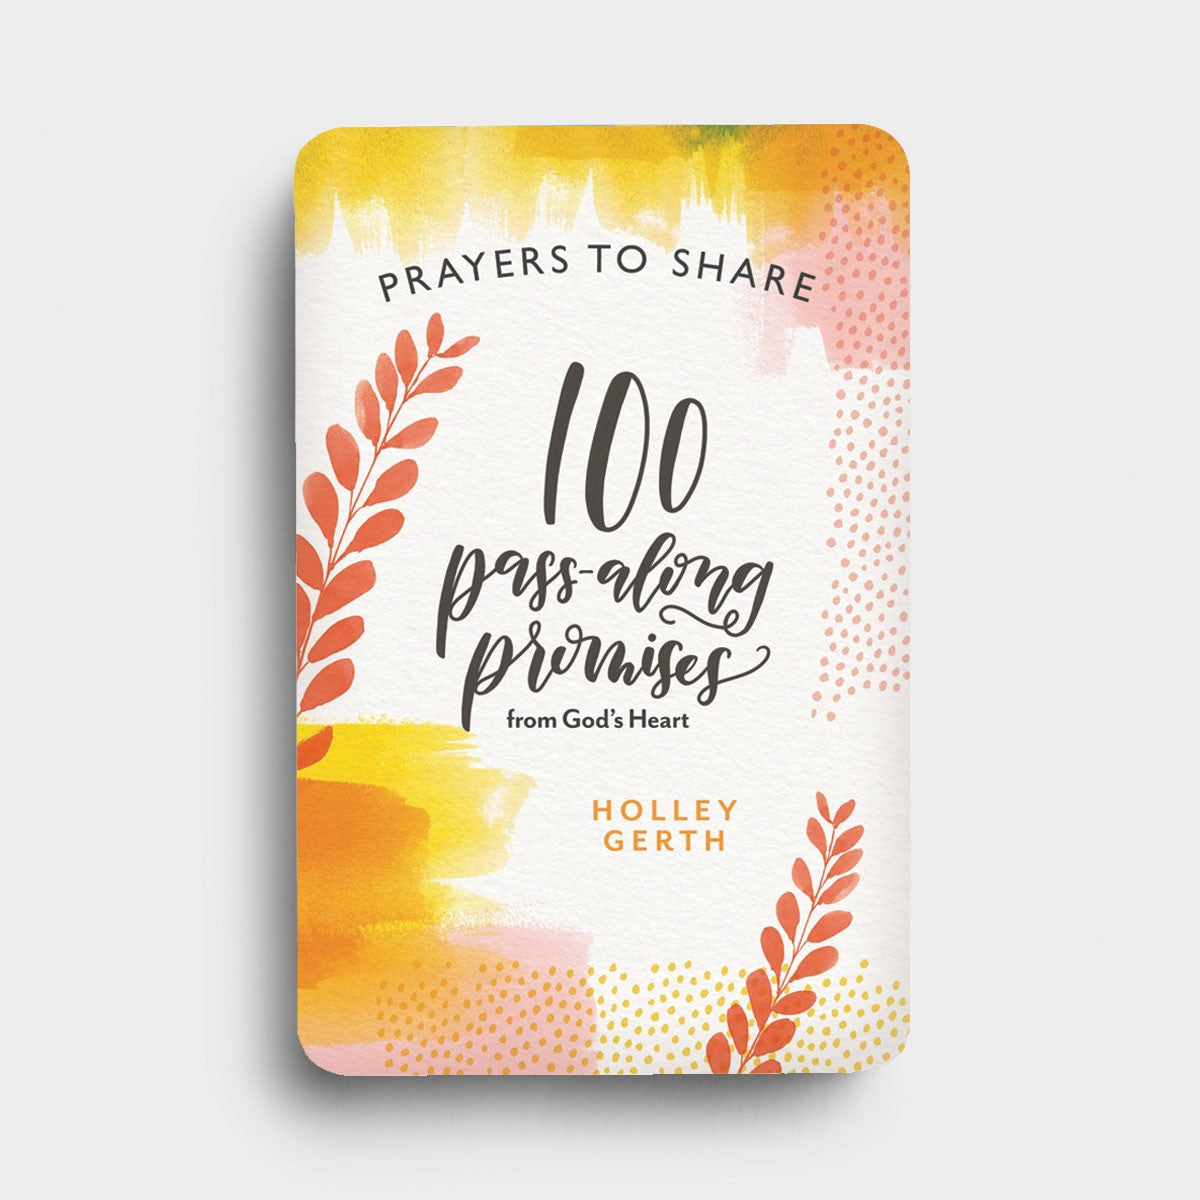 100 Pass Along Bible Promises From God's Heart